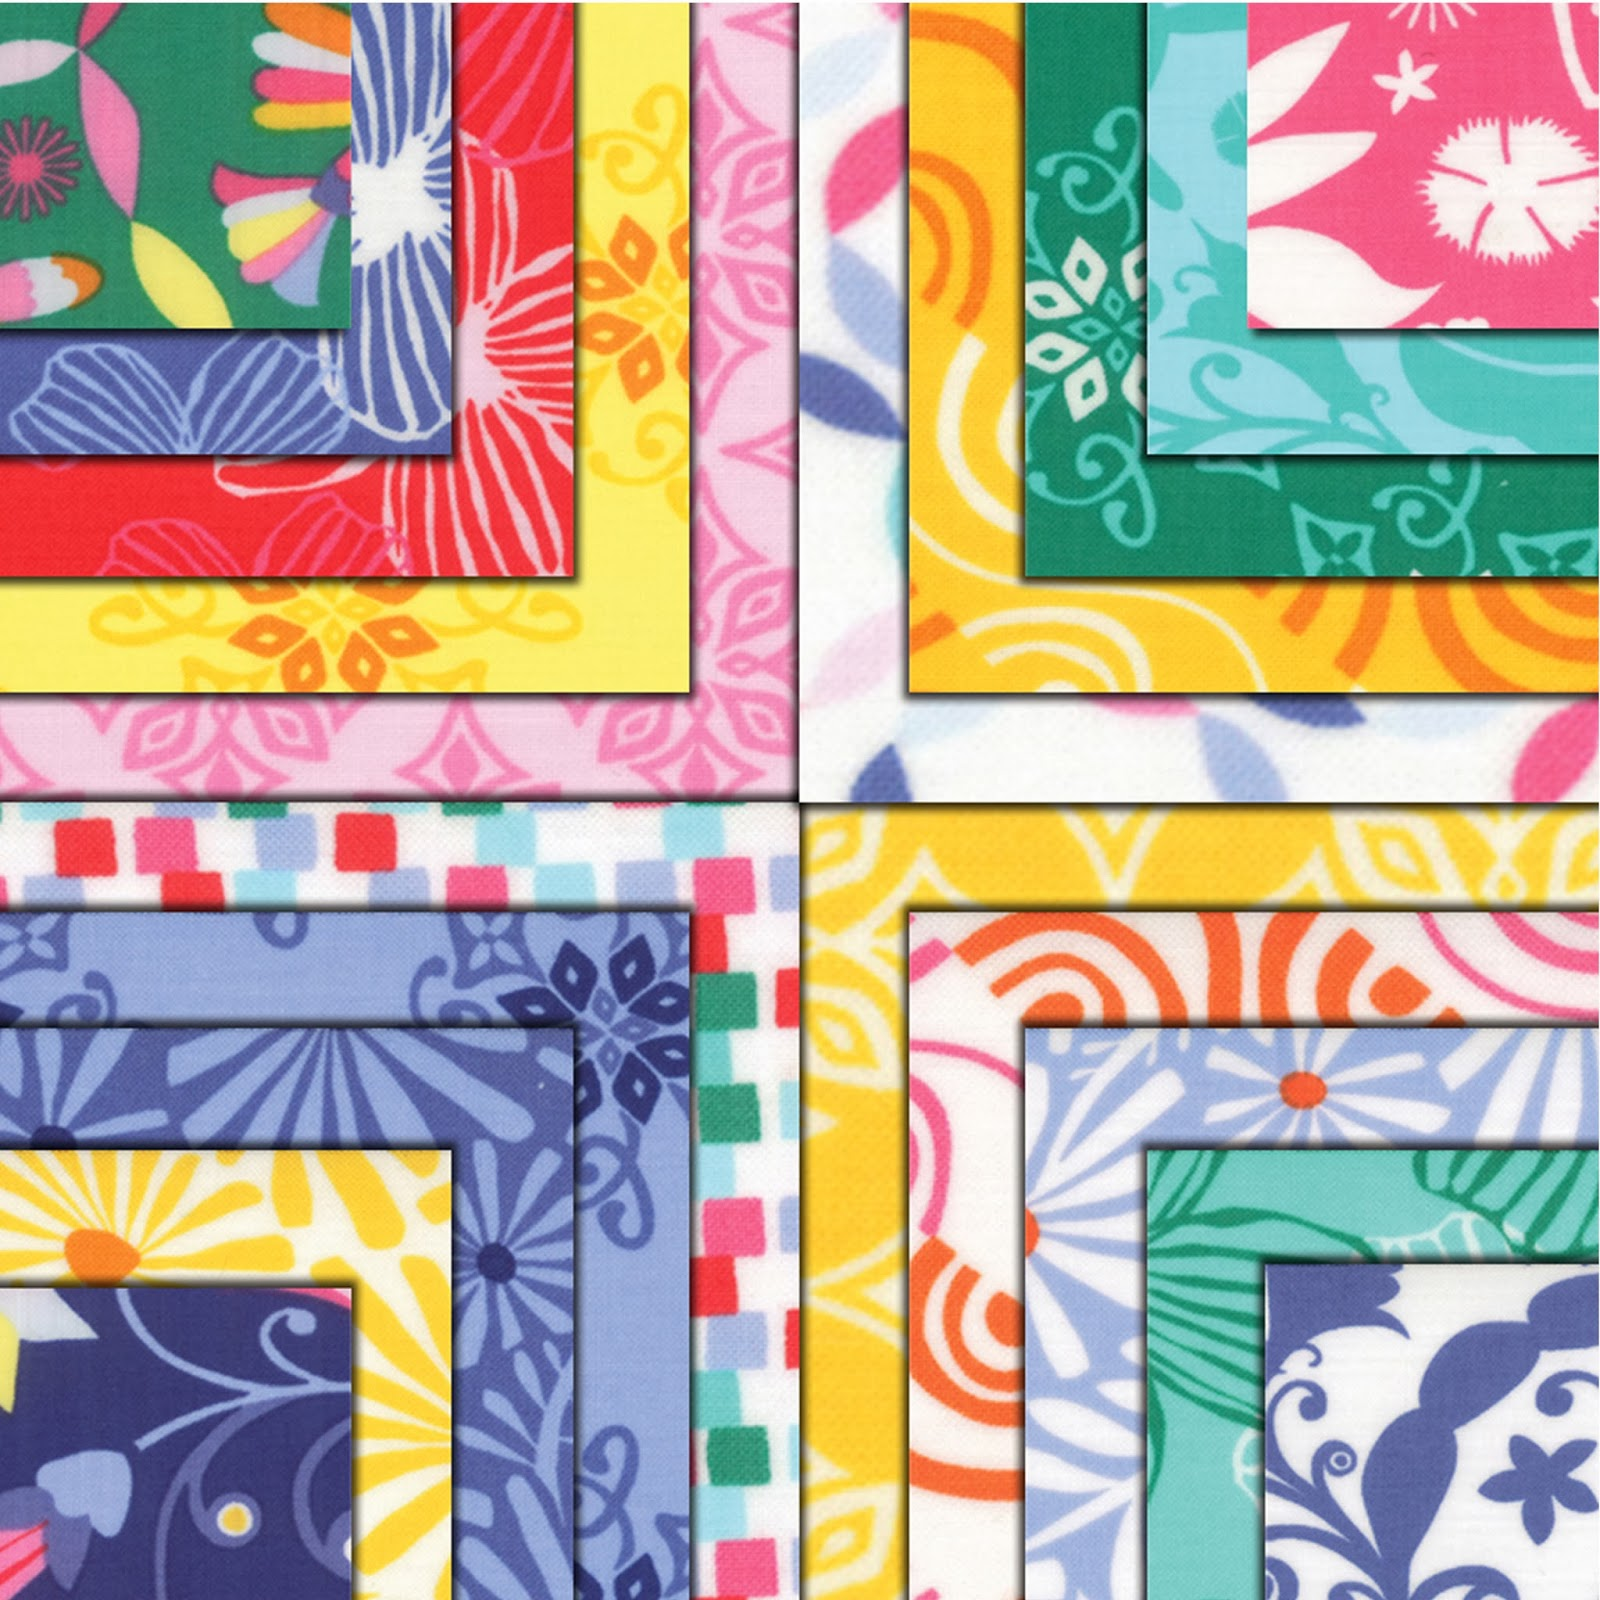 Moda DAYDREAM DAYDREAMS Quilt Fabric by Kate Spain